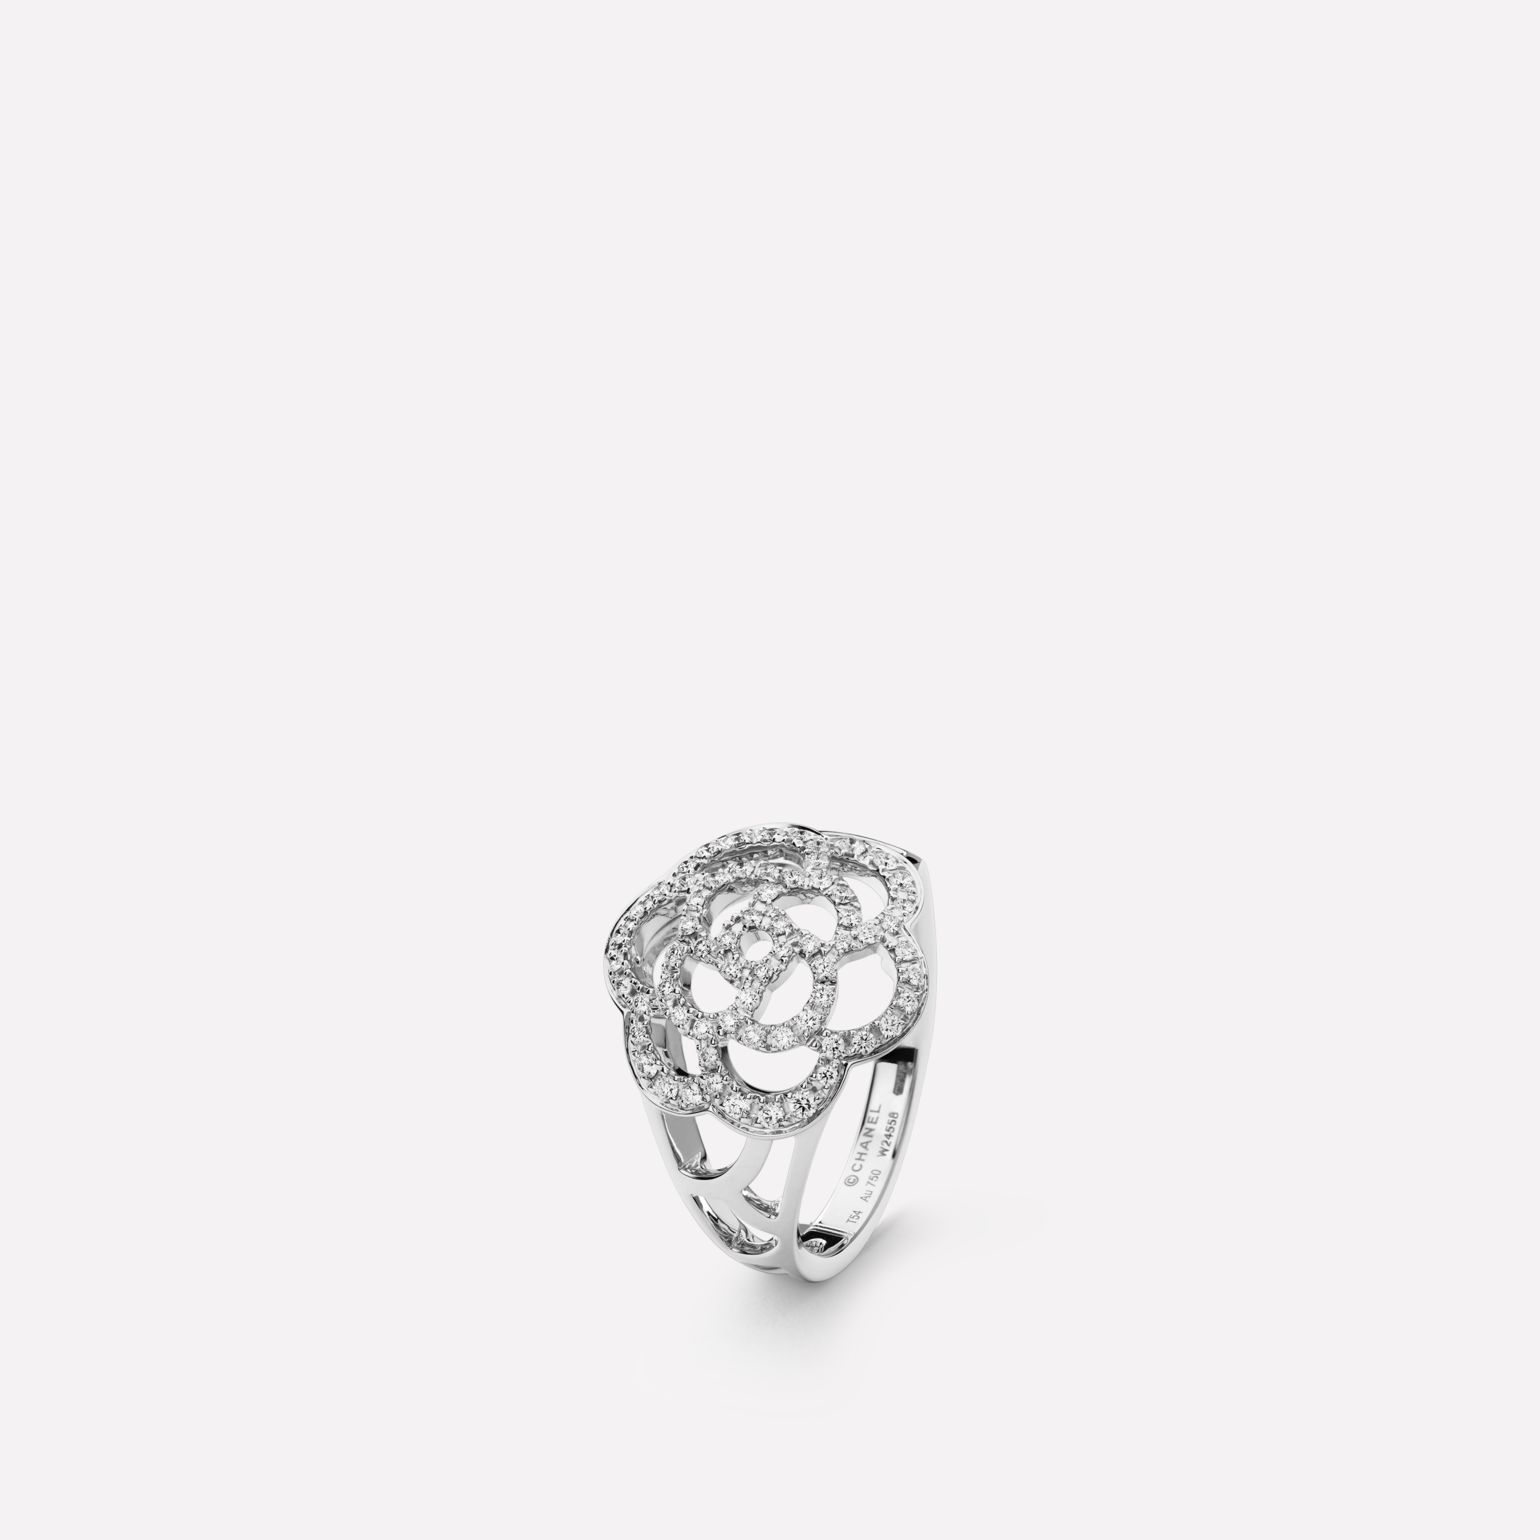 Camélia Ring Camélia Ajouré ring in 18K white gold and diamonds